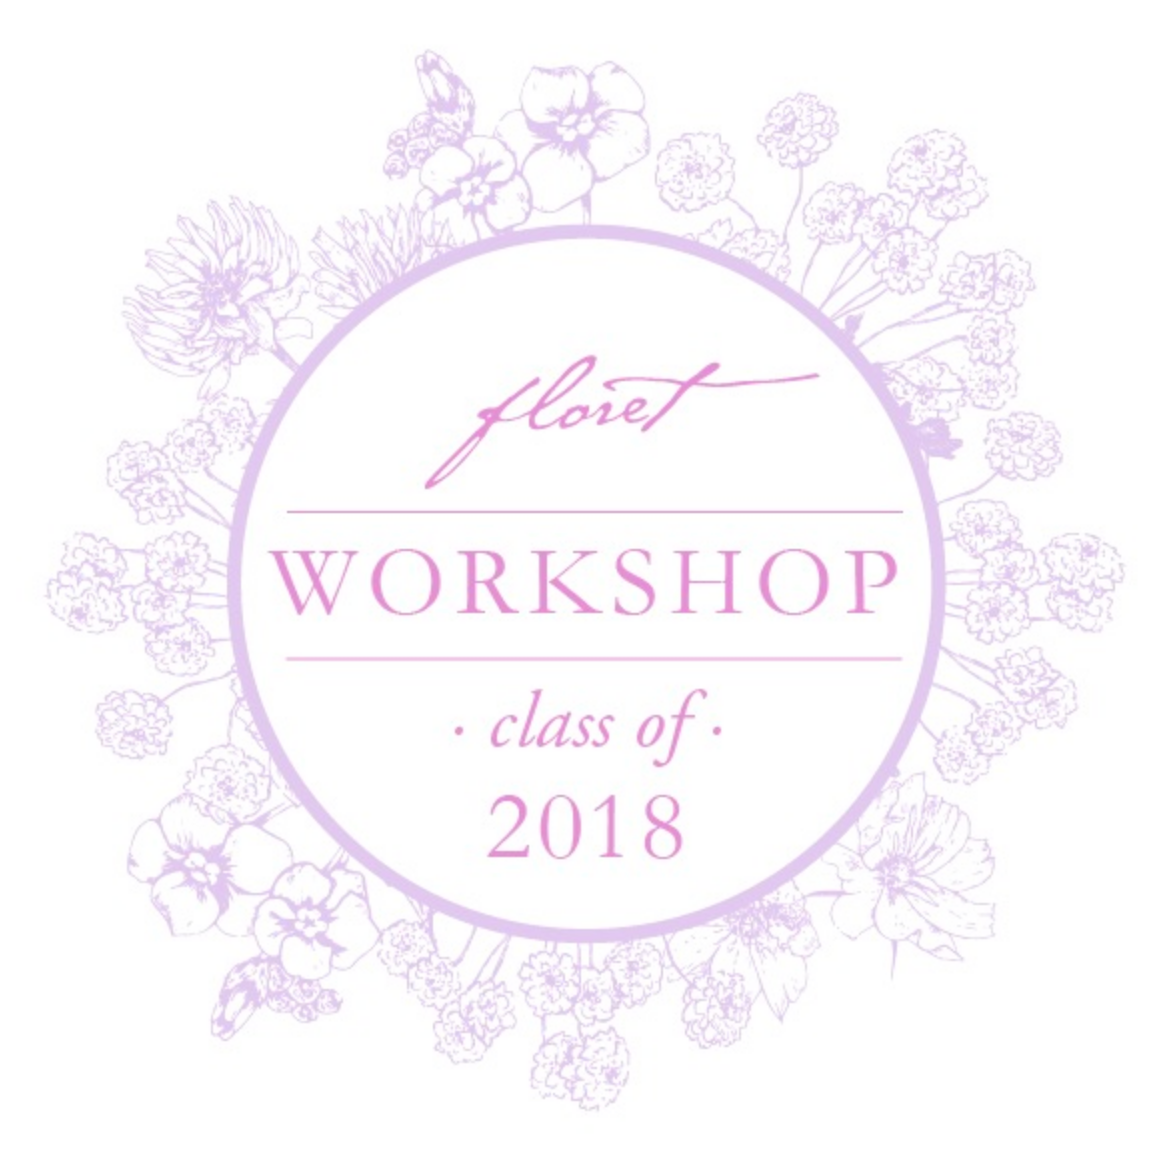 2018_floretworkshop.png